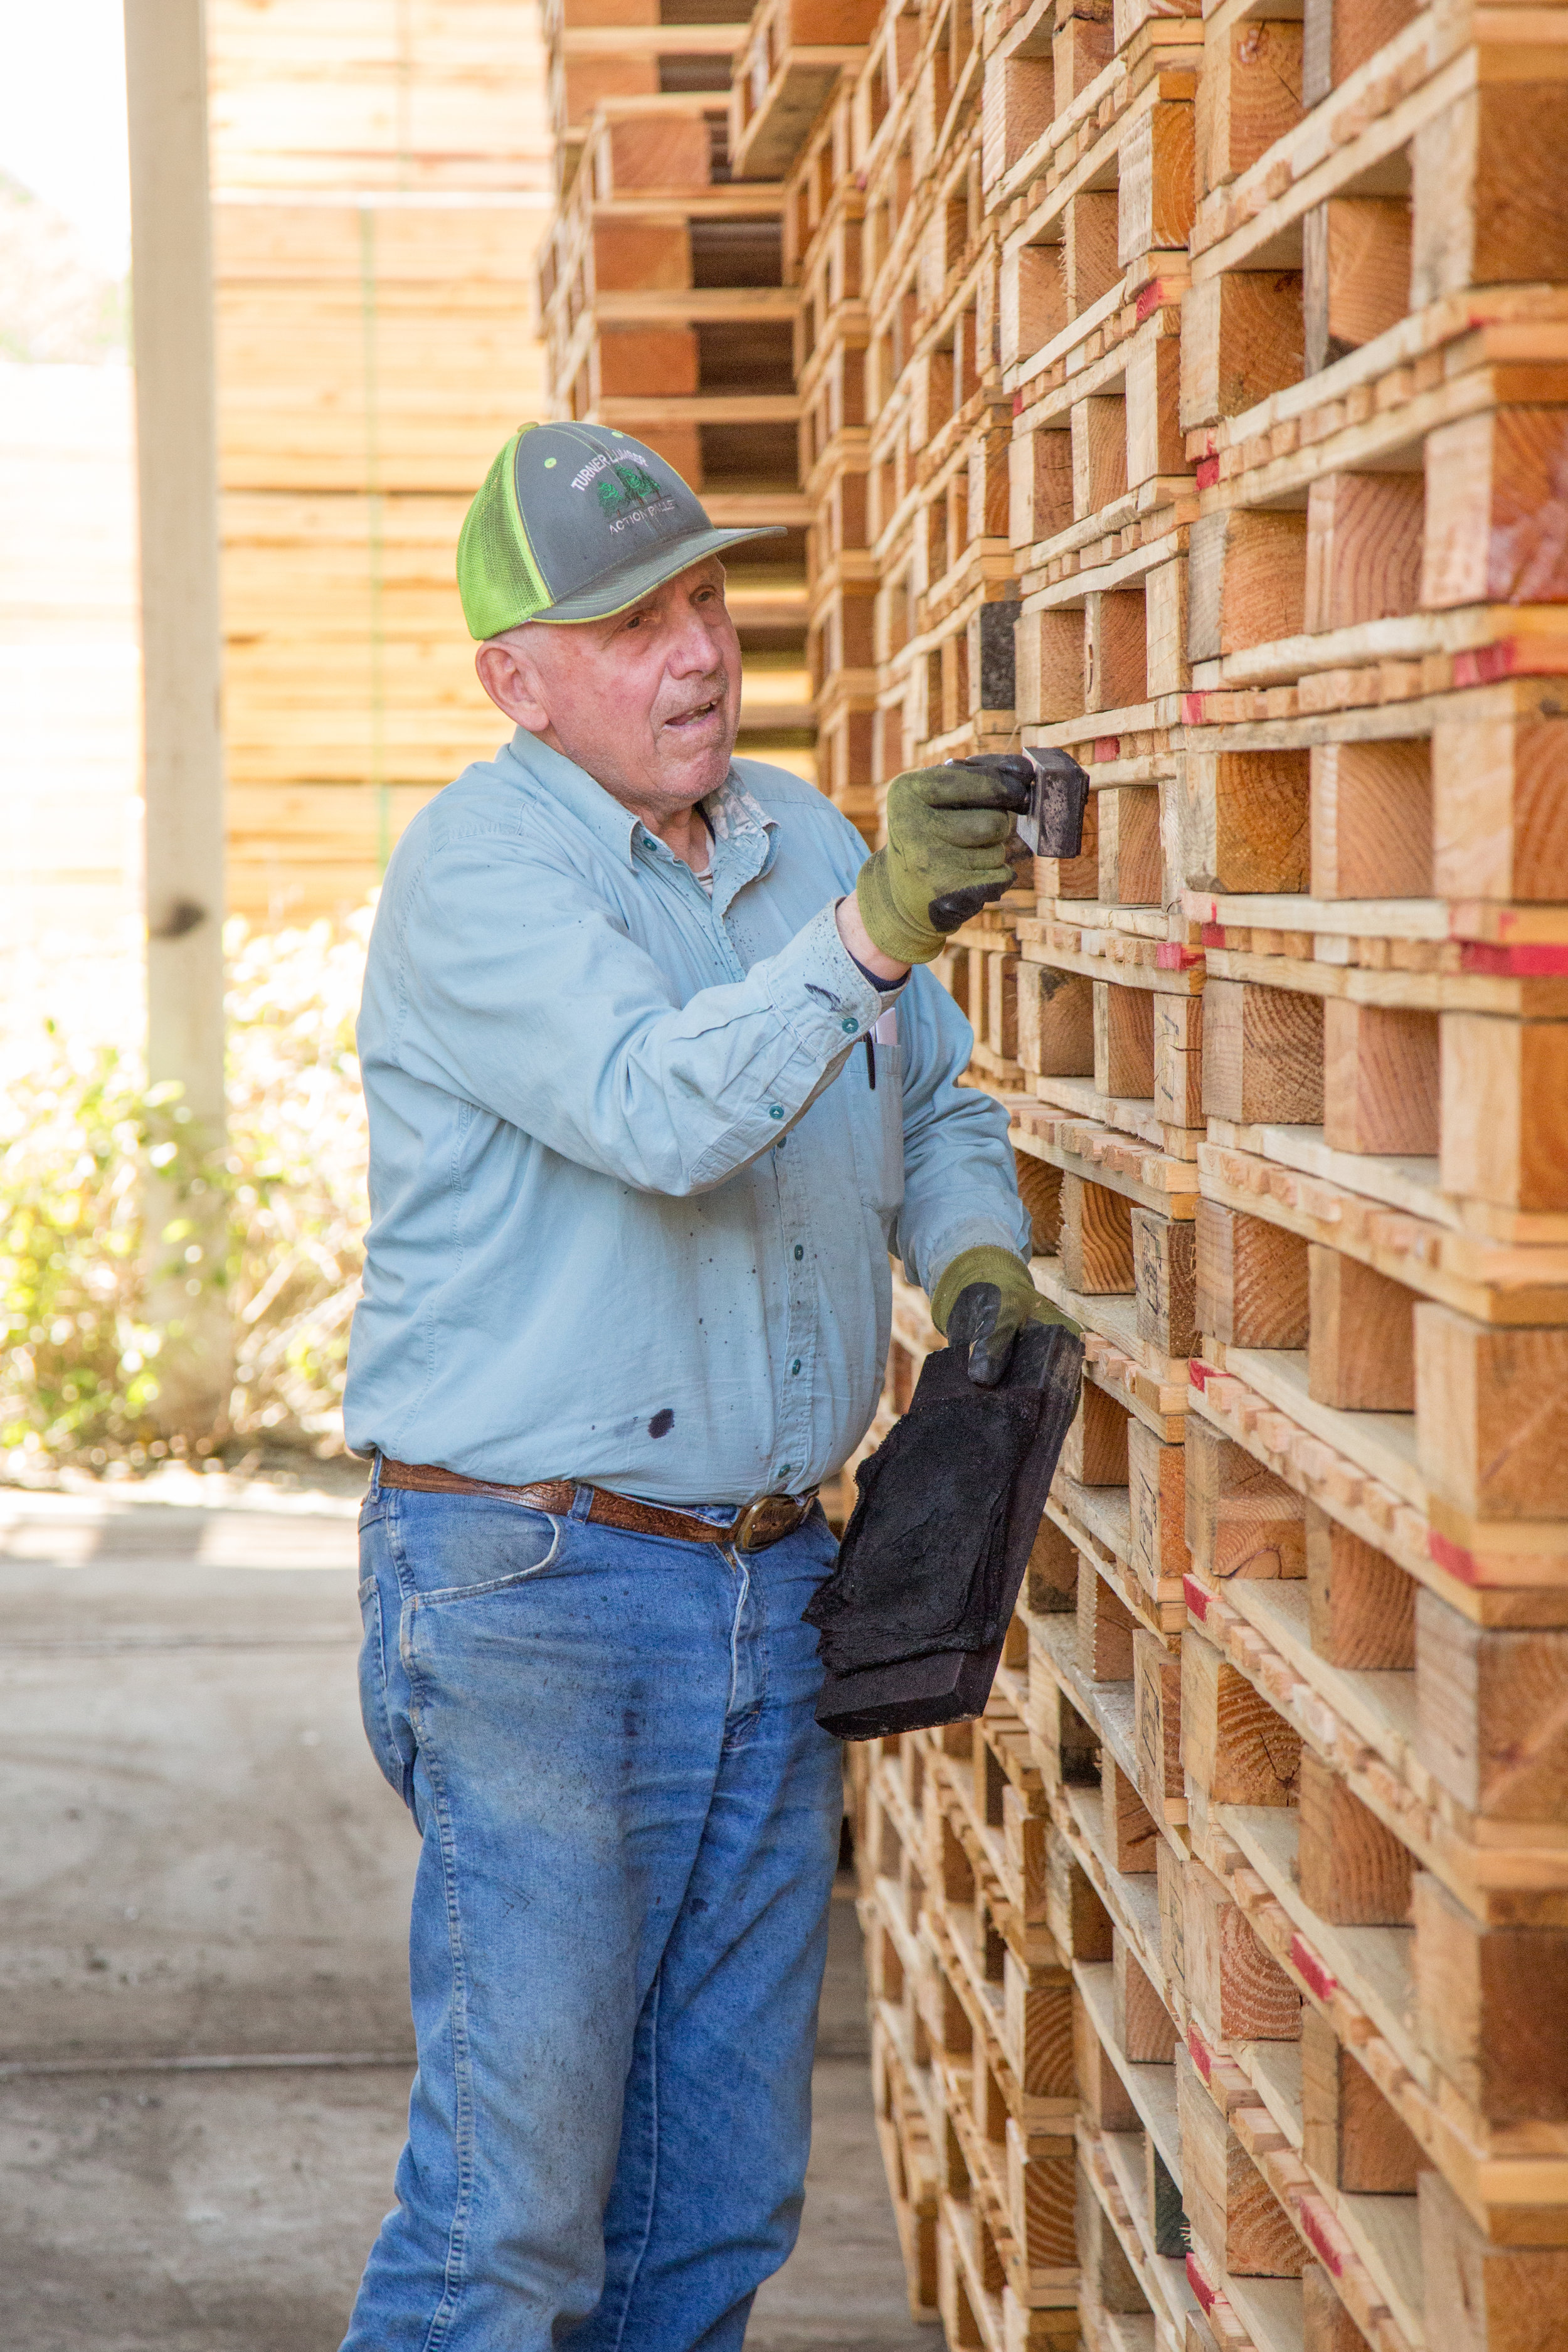 Copy of Turner Lumber Products and Business Photos 2019 (107).jpg